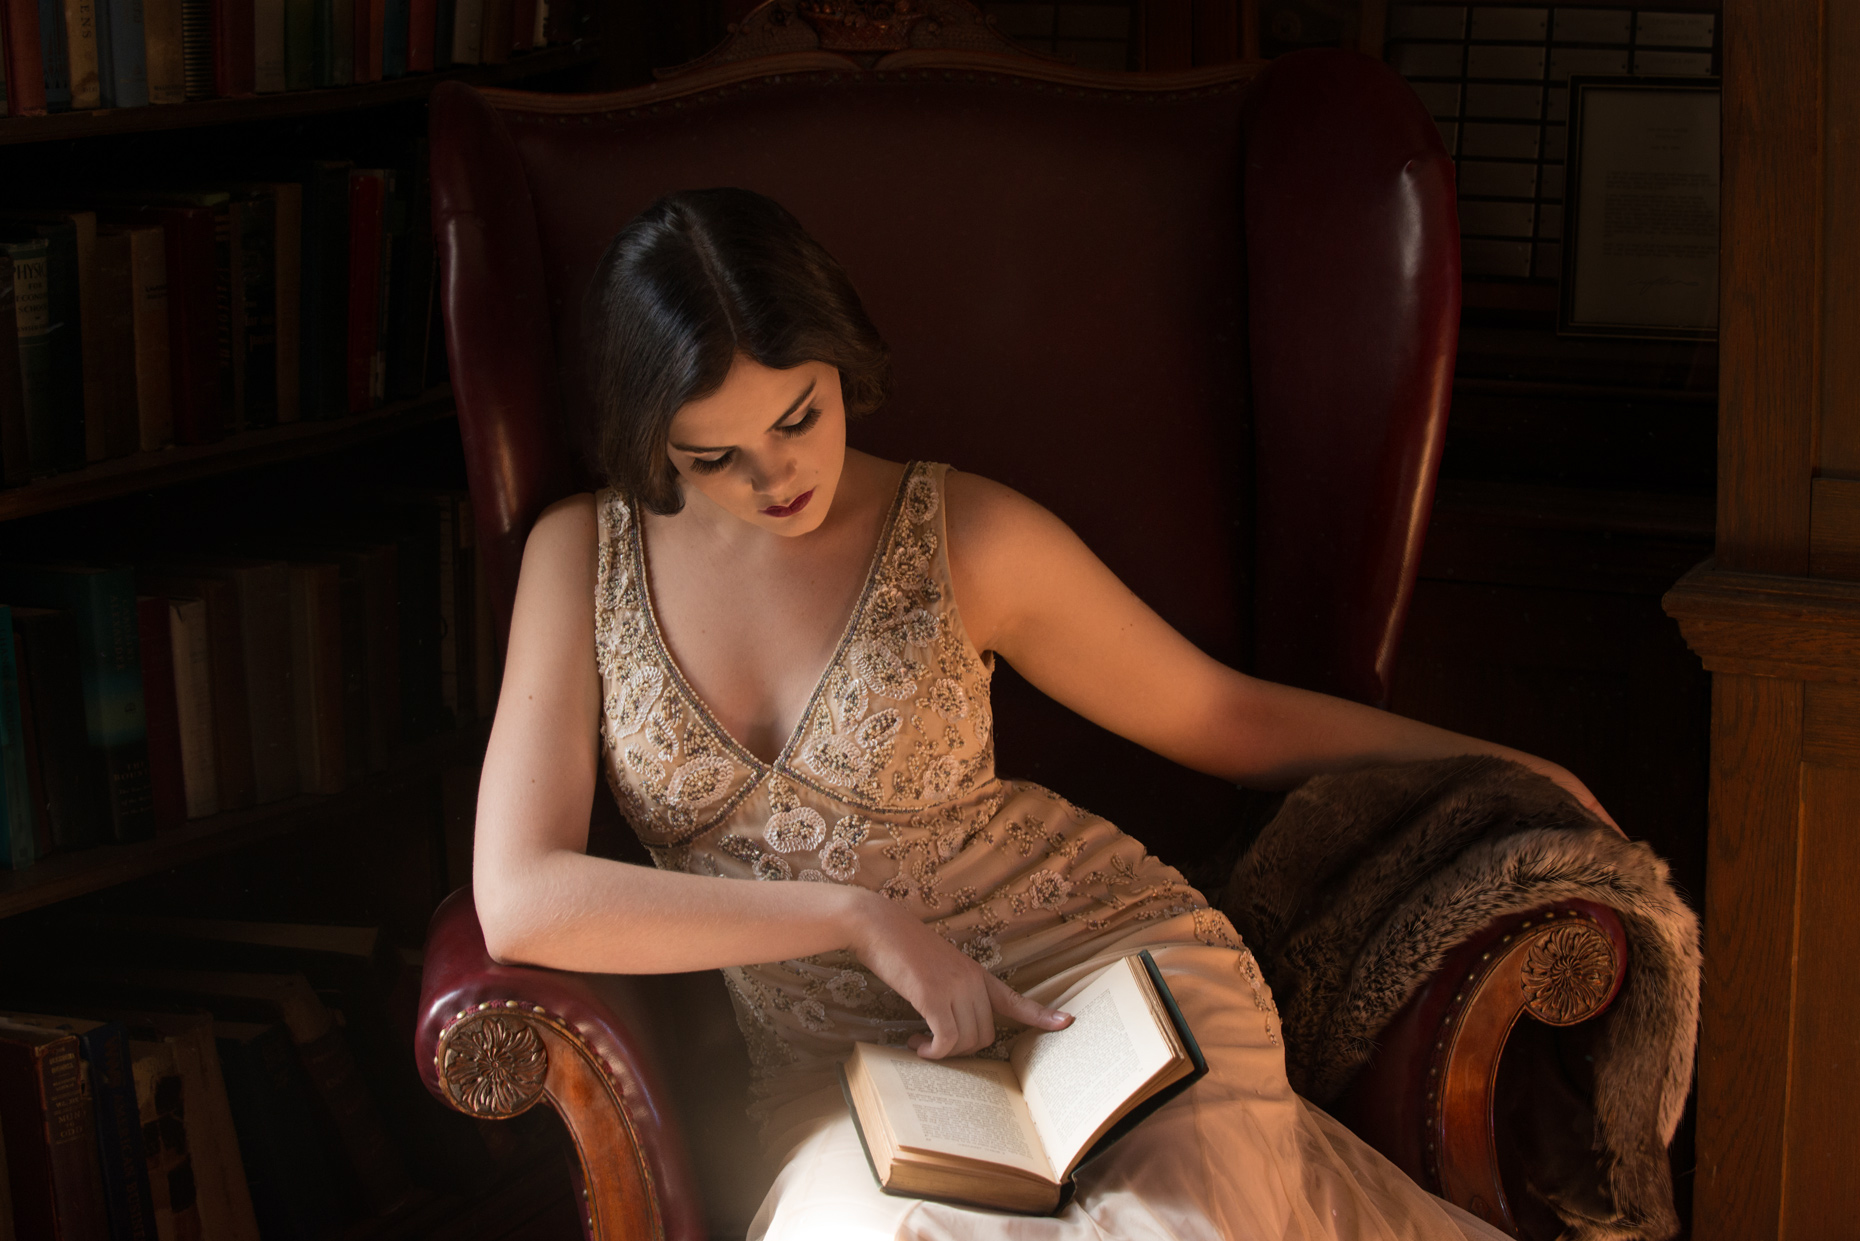 Woman in a vintage gown sitting in a chair and reading Conceptual Portrait Photographer in Boston